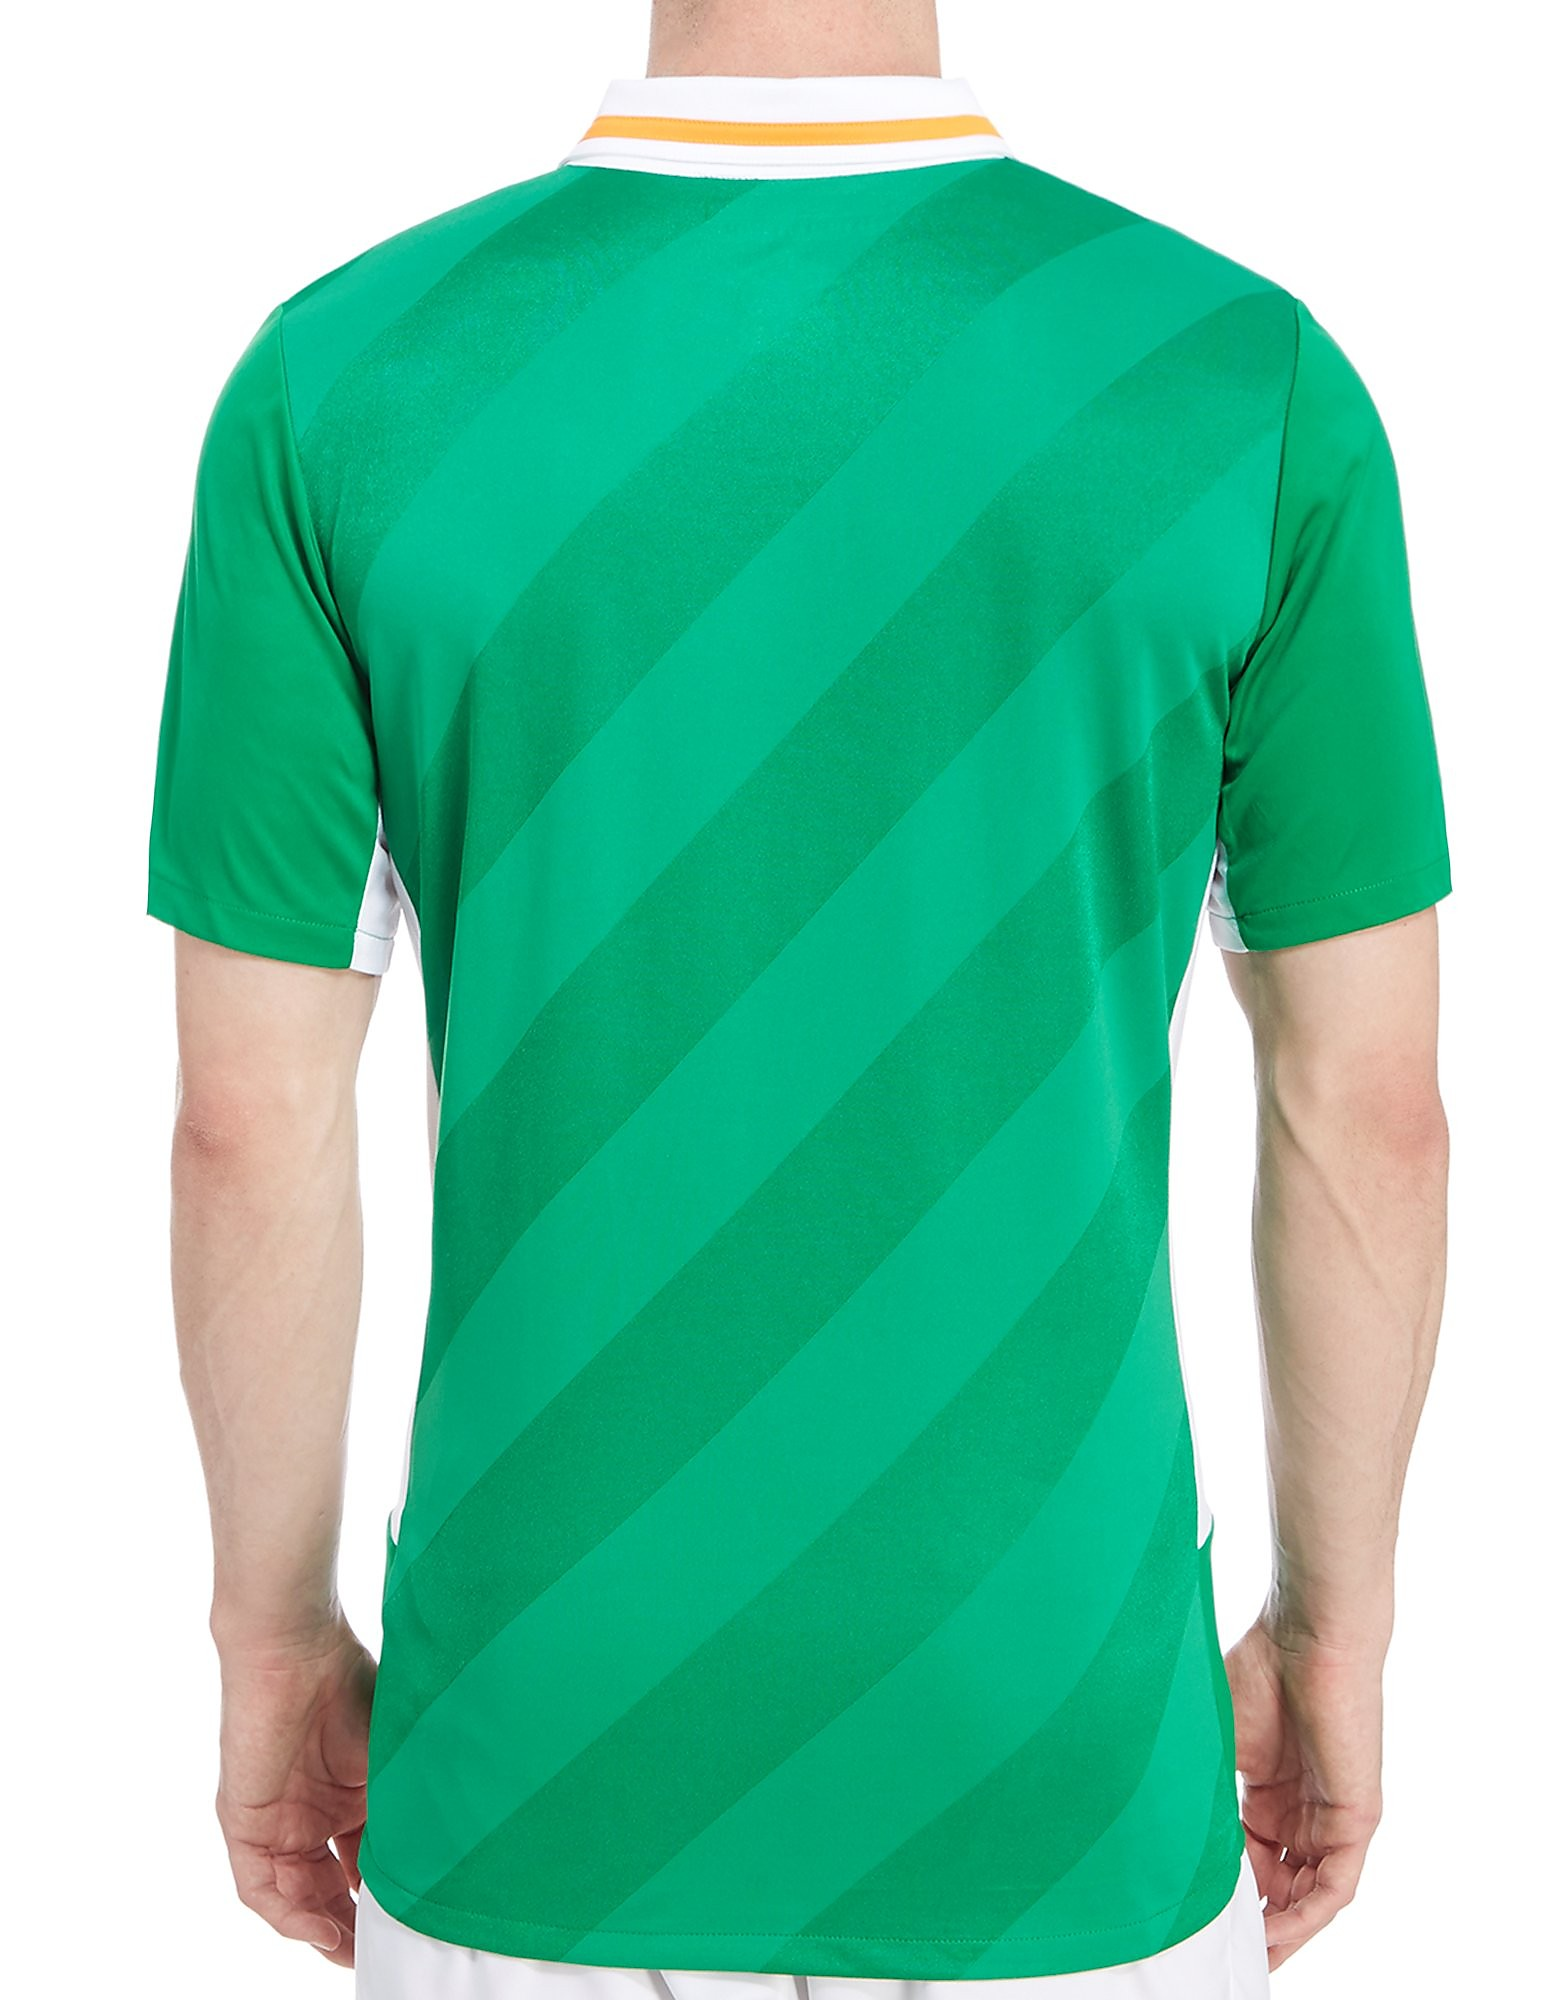 Umbro Republic of Ireland 2016 Home Shirt